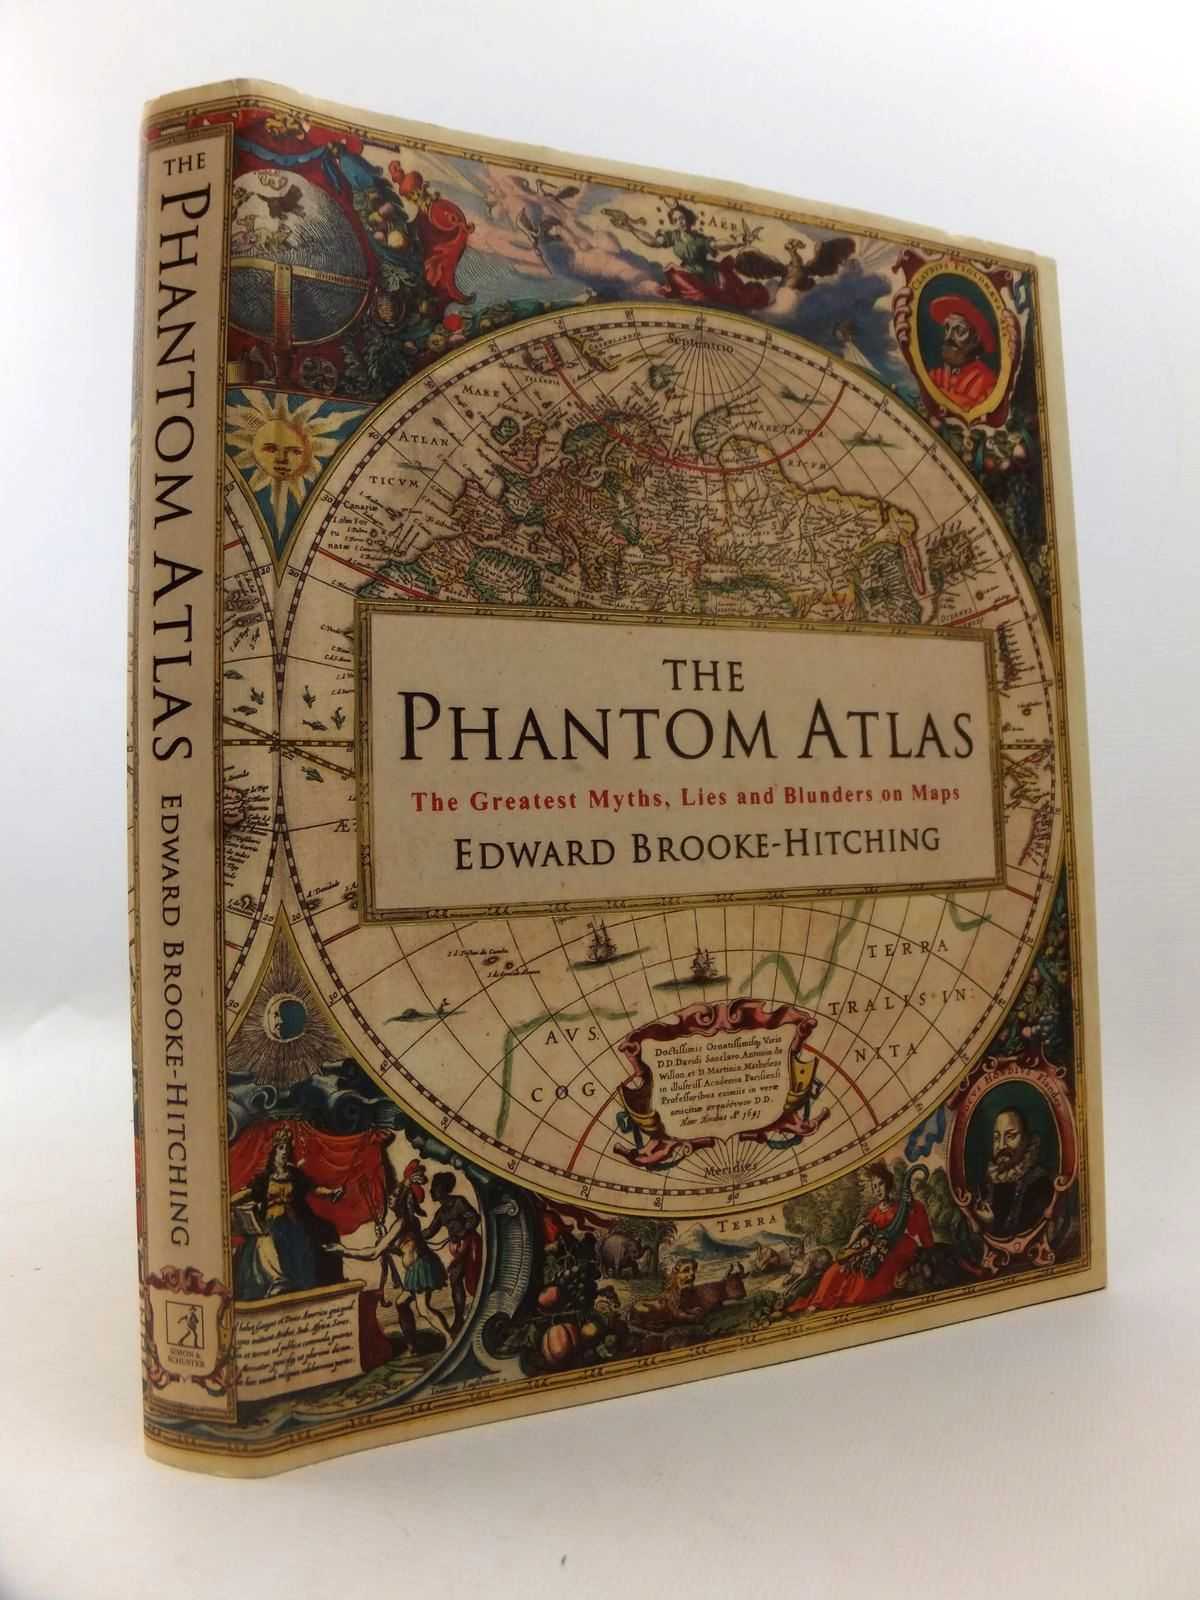 De Phantom Atlas